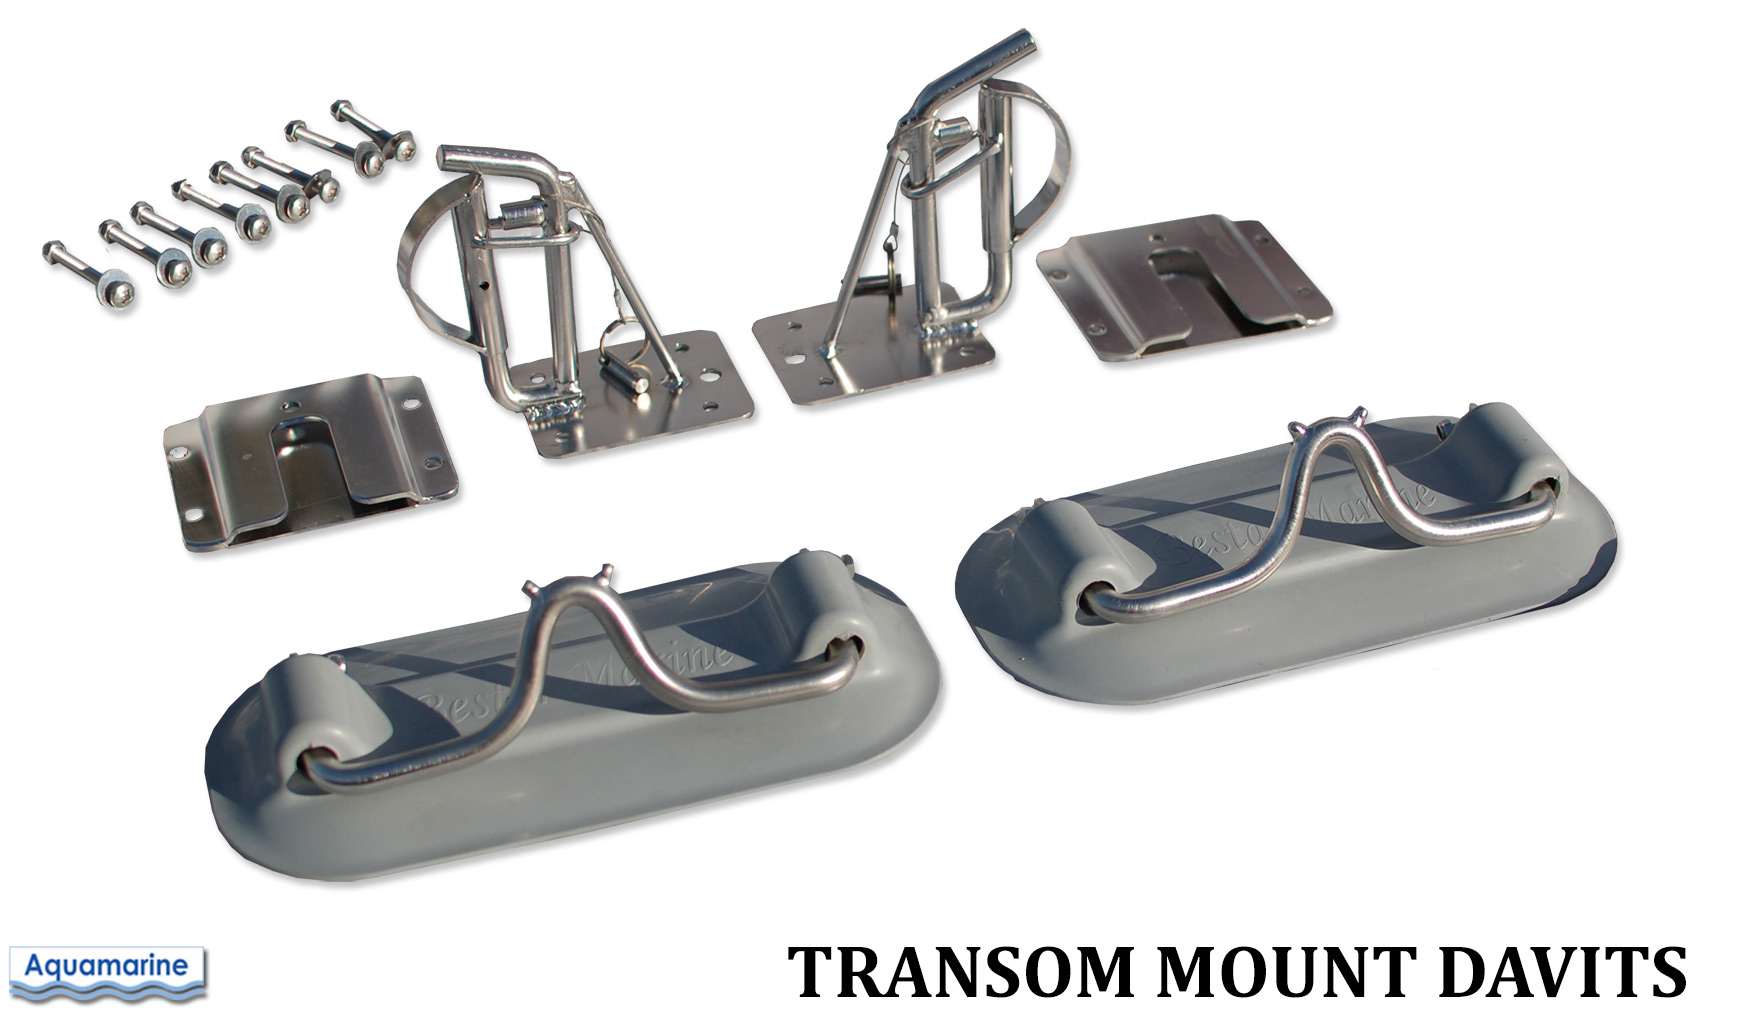 Transom Mount Davits for Inflatable